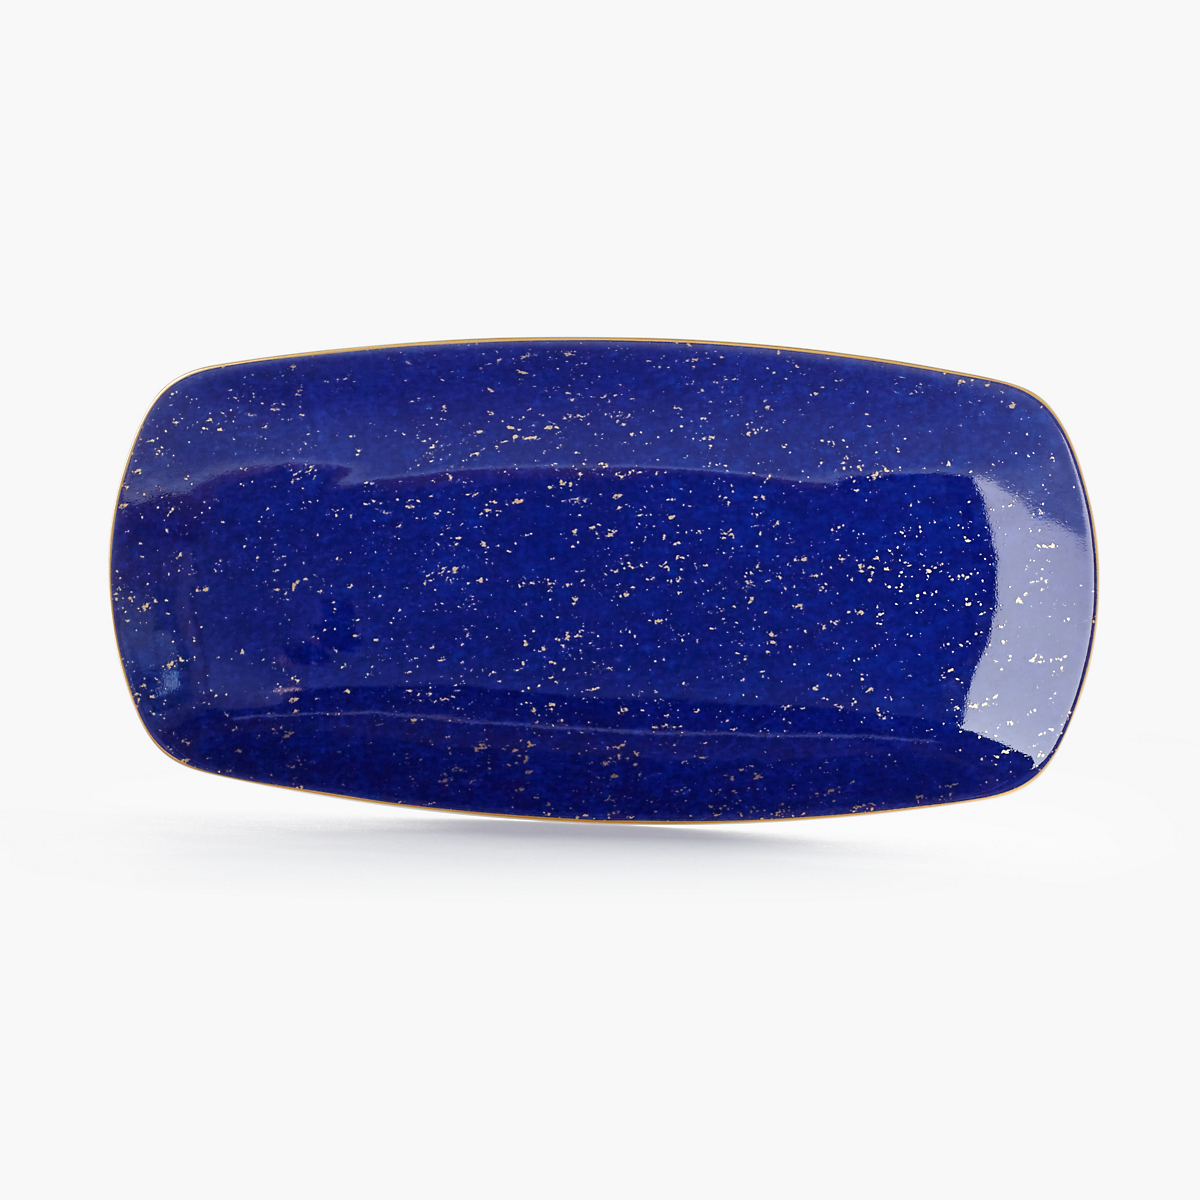 L'Objet Medium Rectangular Lapis Tray